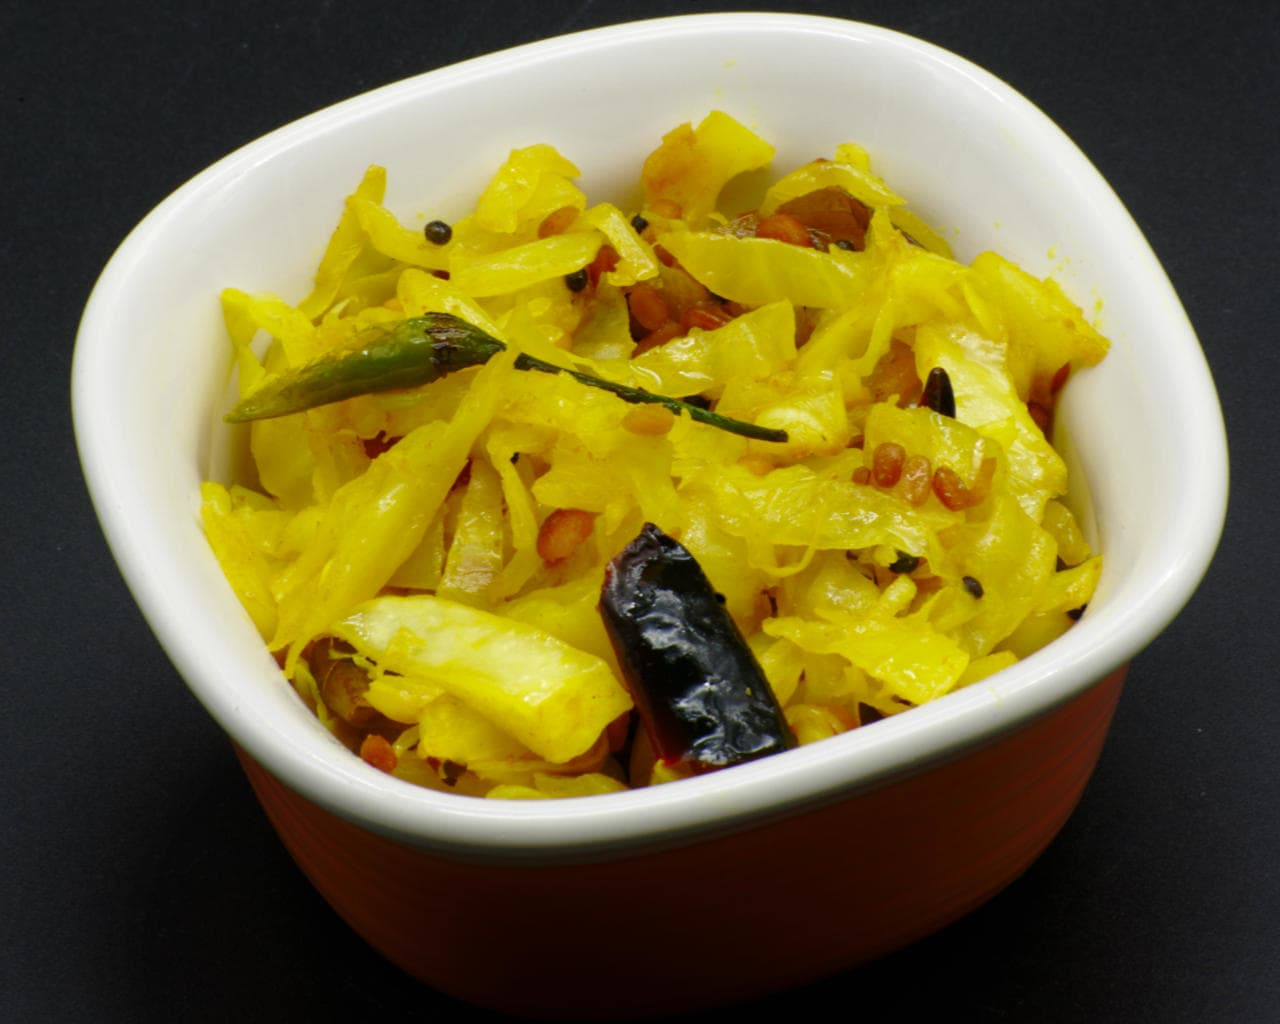 Stir-Fried Cabbage With South Indian Spices Image